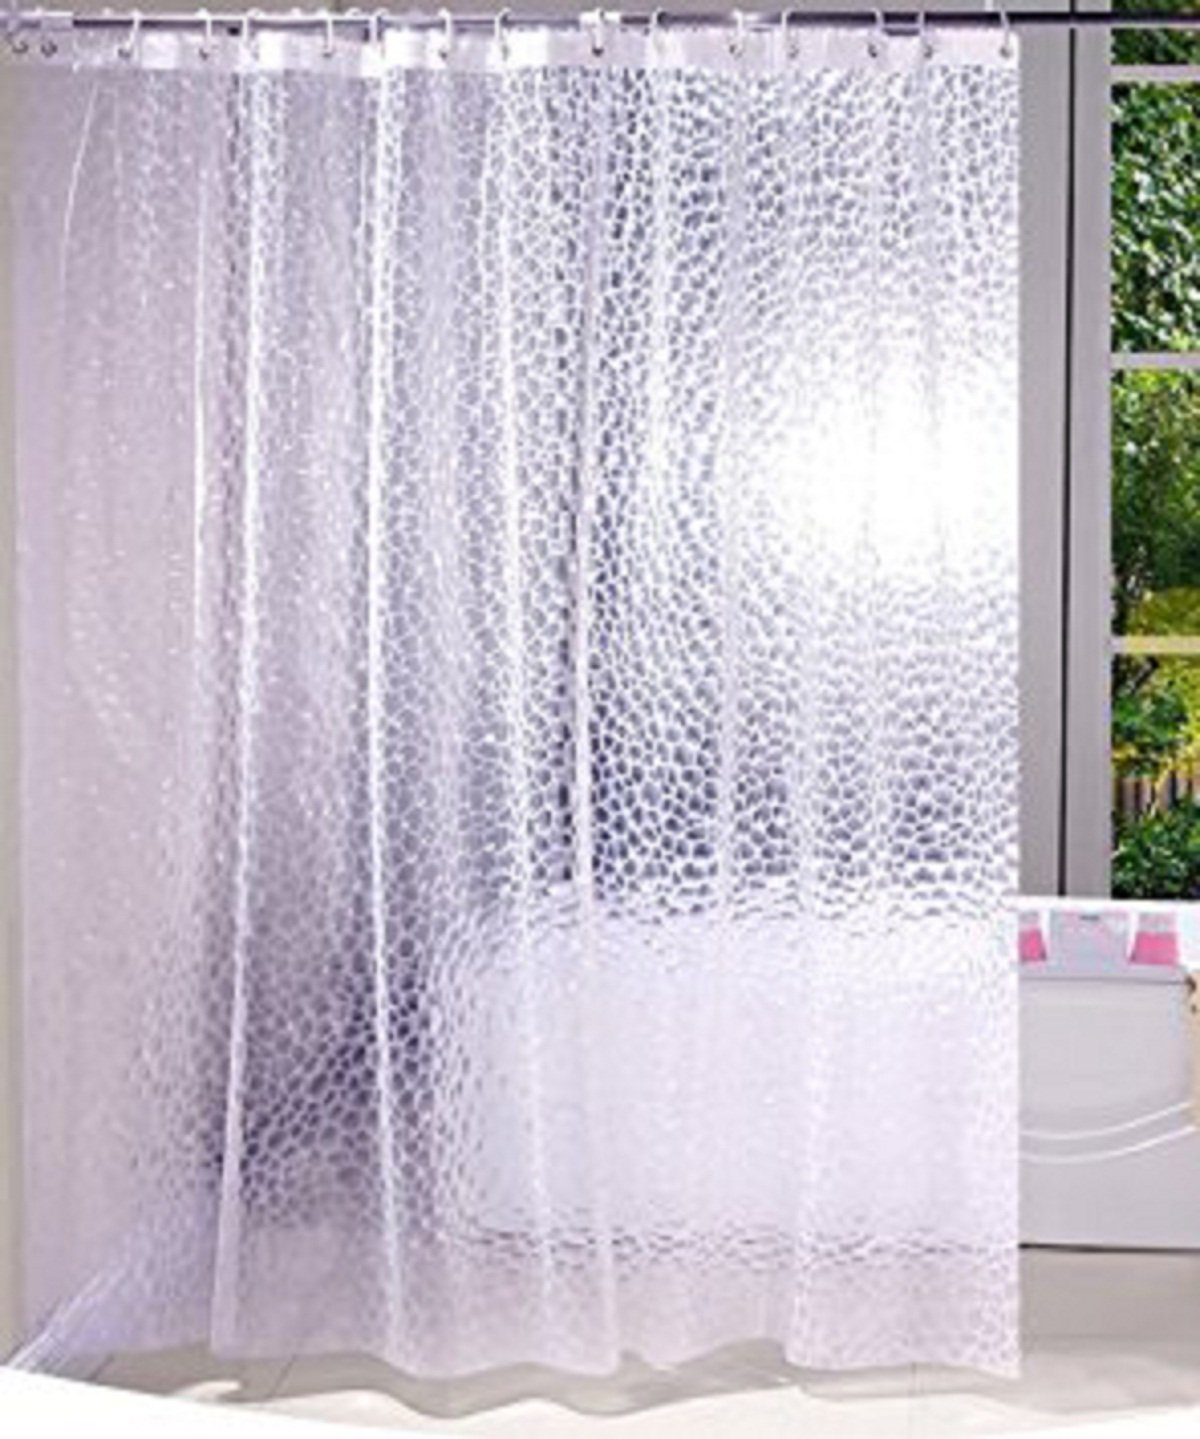 Kuber Industries PVC 0.20 MM AC Shower Curtain-8 Feet (Transparent)-CTKTC3537